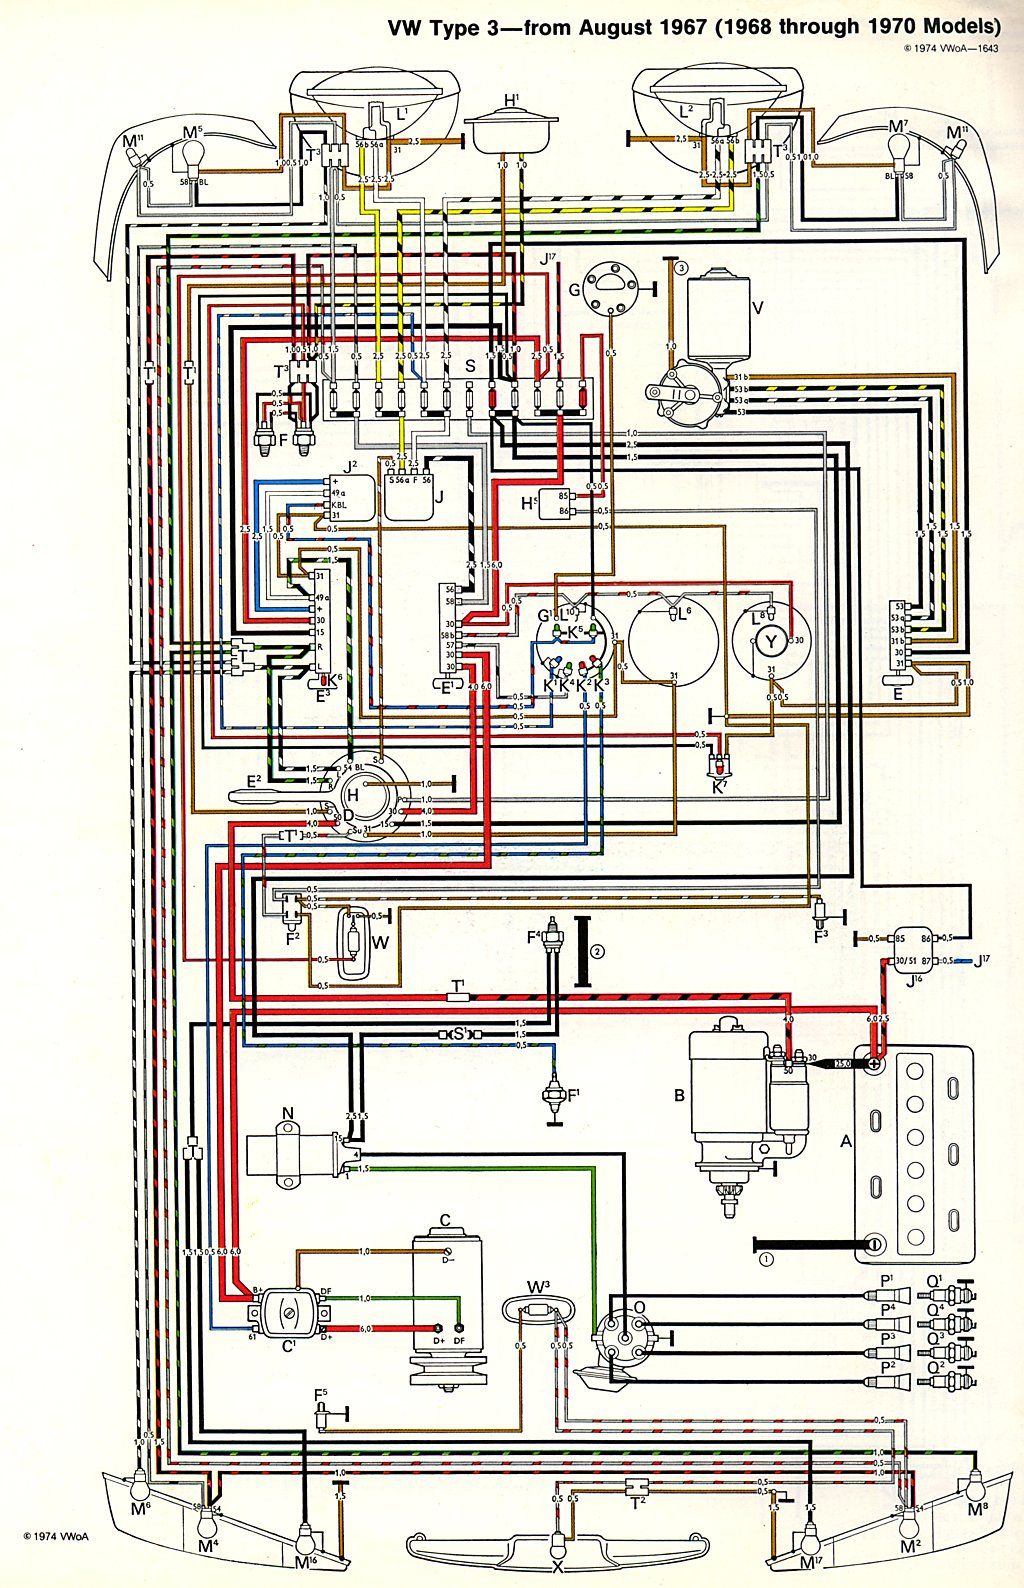 bus wiring diagrams wiring diagram1963 vw bus wiring diagram 7 9 bandidos kastellaun de \\u2022vw bus diagram wiring diagram